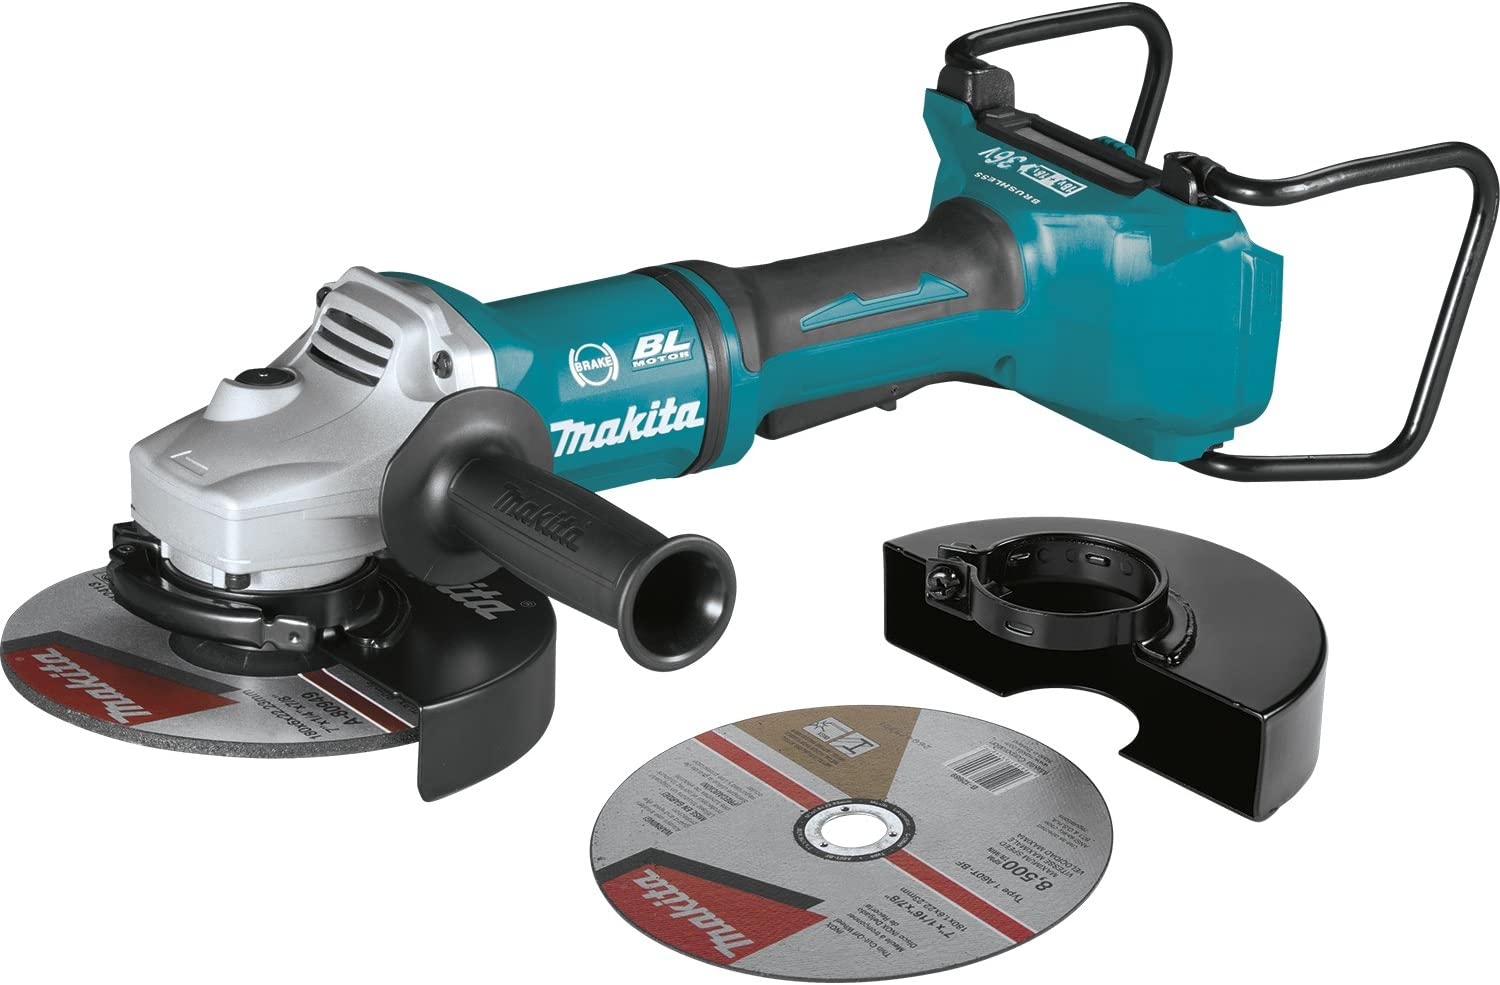 Makita XAG12Z1 18V X2 LXT Lithium-Ion 36V Brushless Cordless 7 Paddle Switch Cut-Off Angle Grinder, with Electric Brake, Tool Only